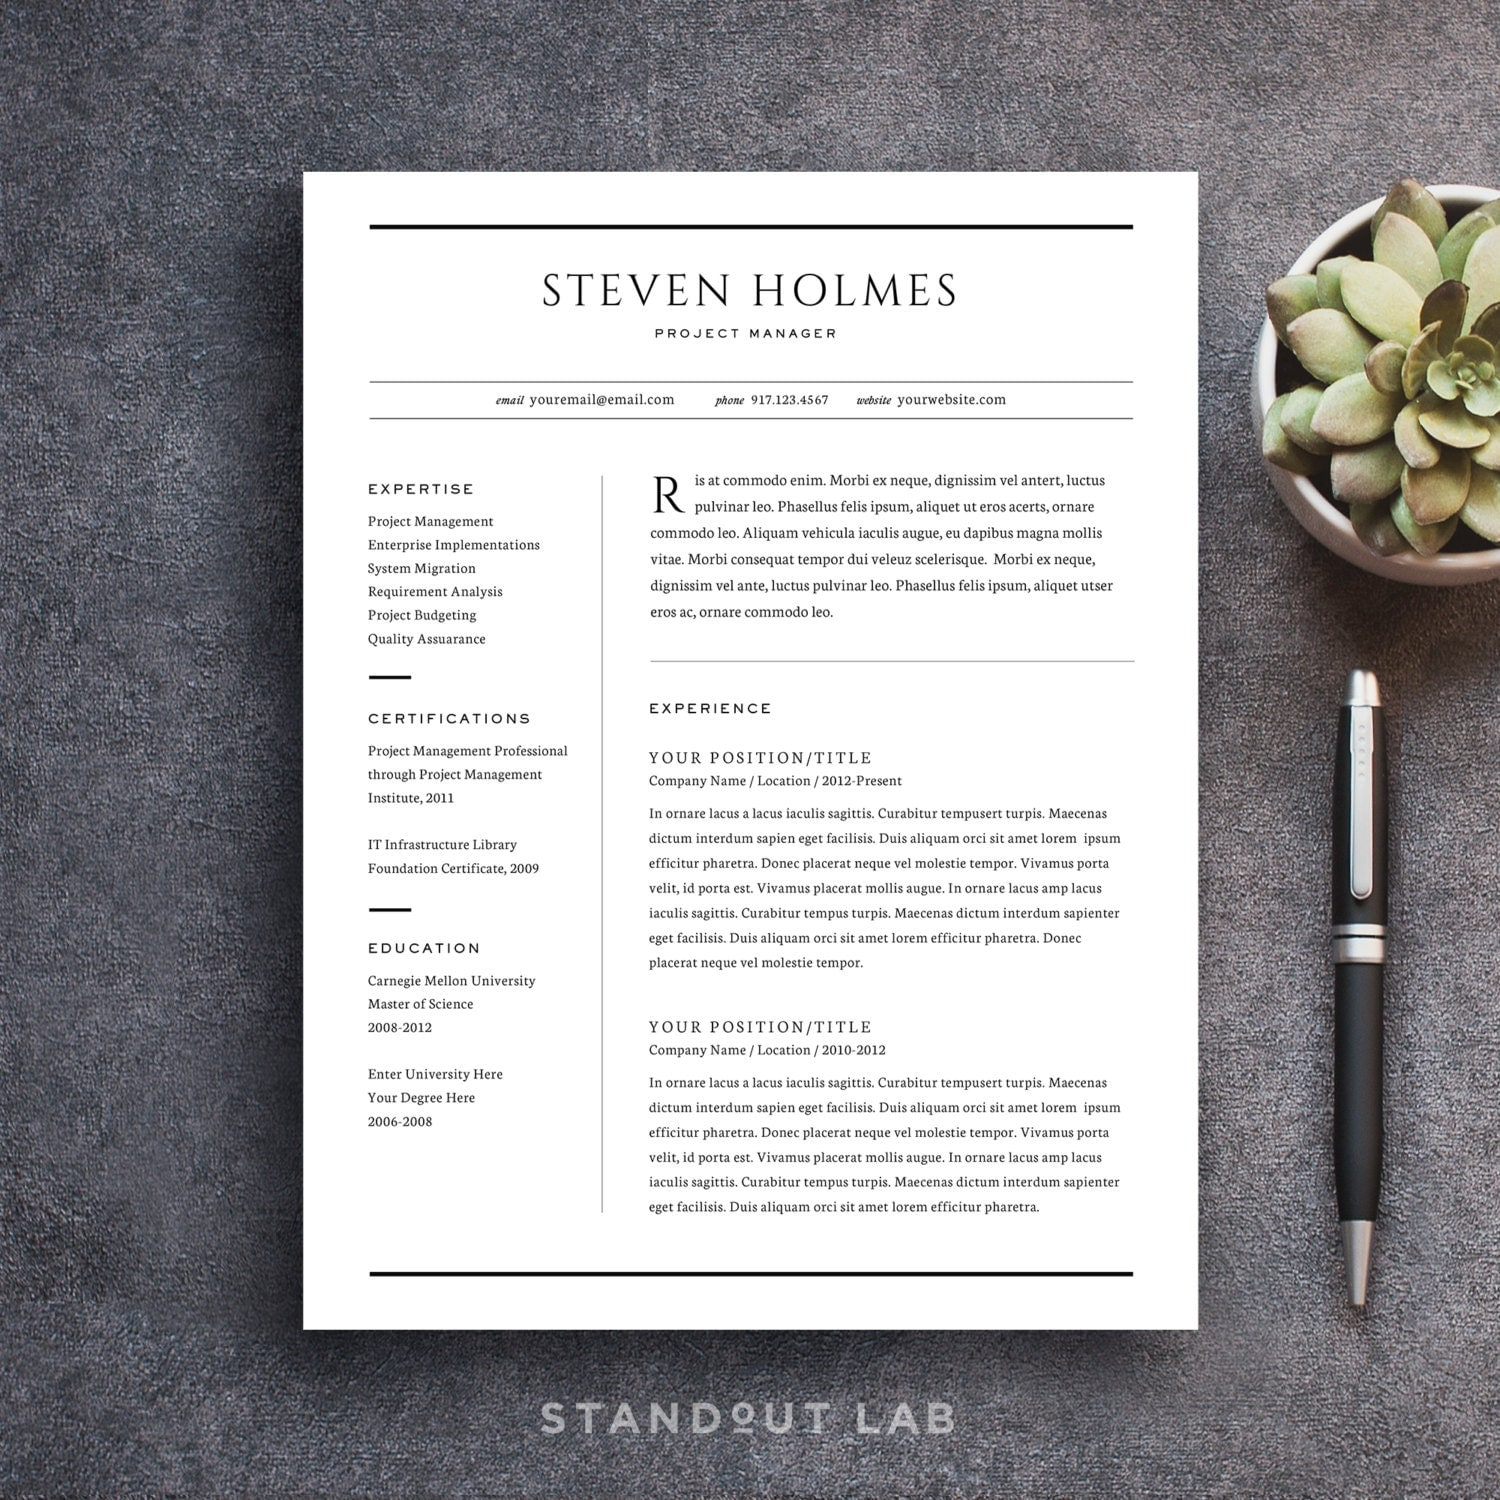 Stand Out Cv Designs : Resume template and cover letter professional design